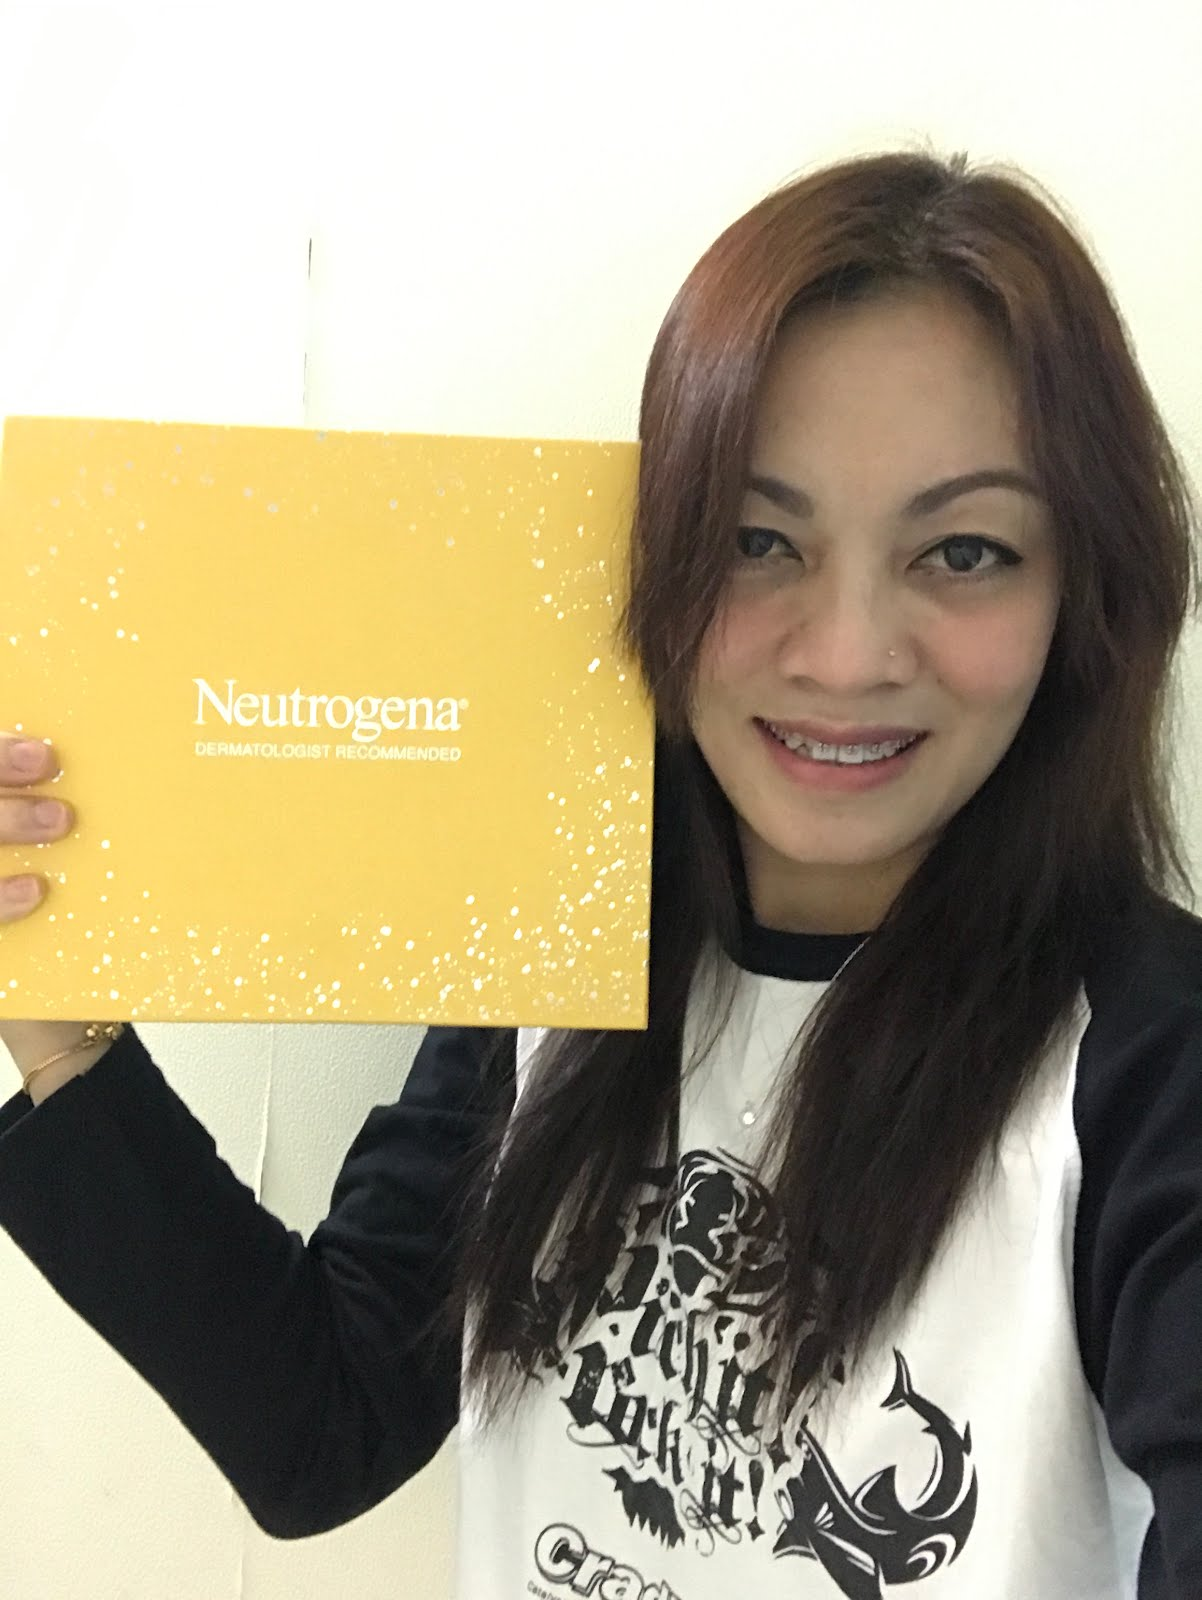 Collaboration with Neutrogena